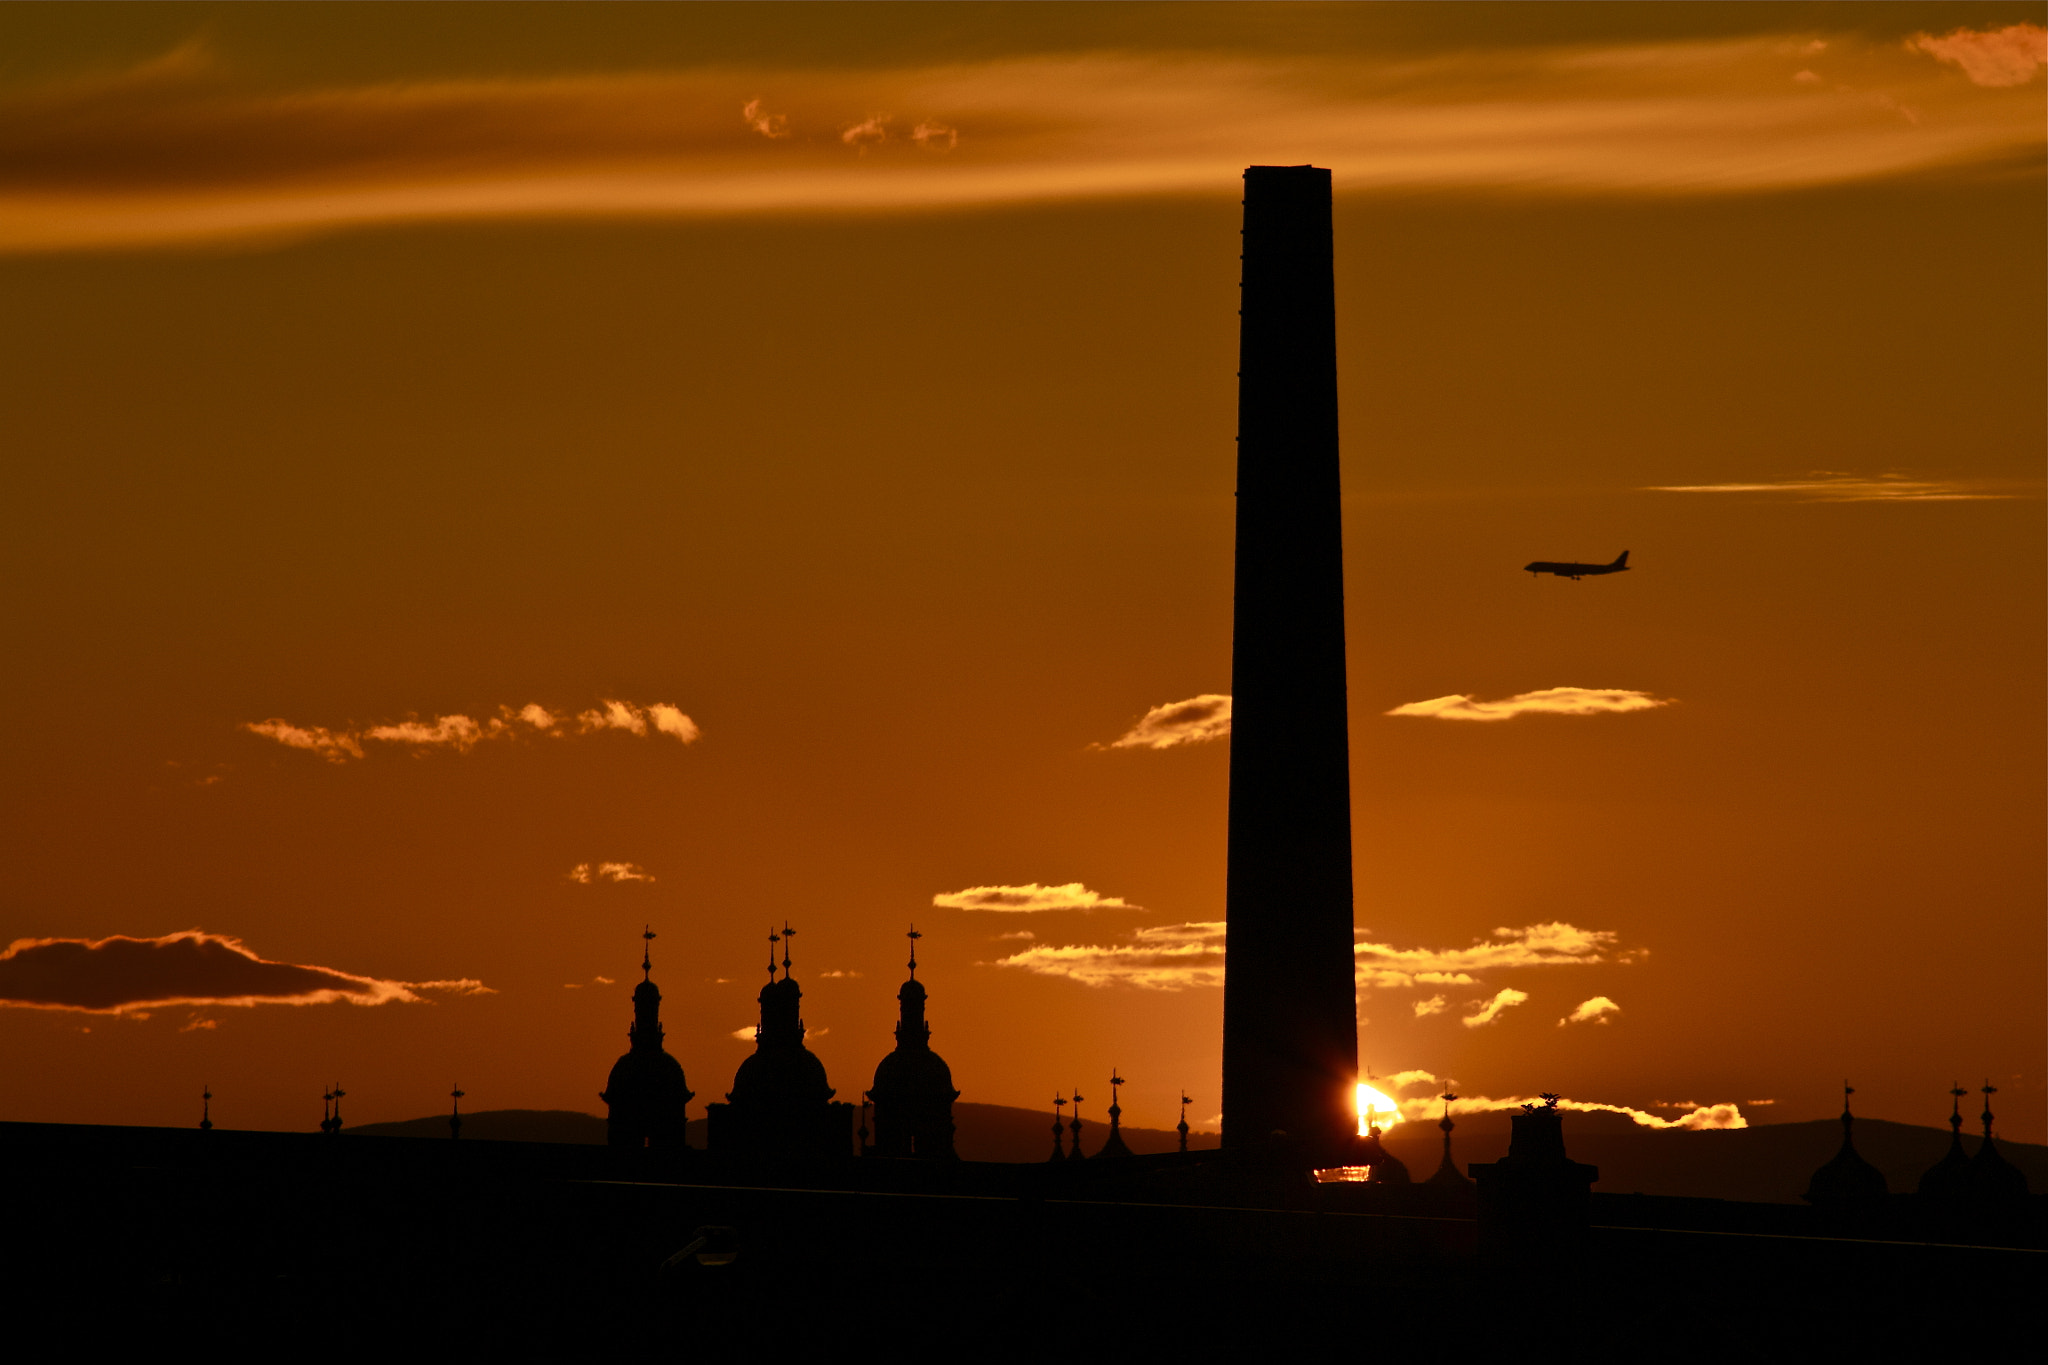 Photograph End of the longest day and the chimney by Yuji Higashino on 500px